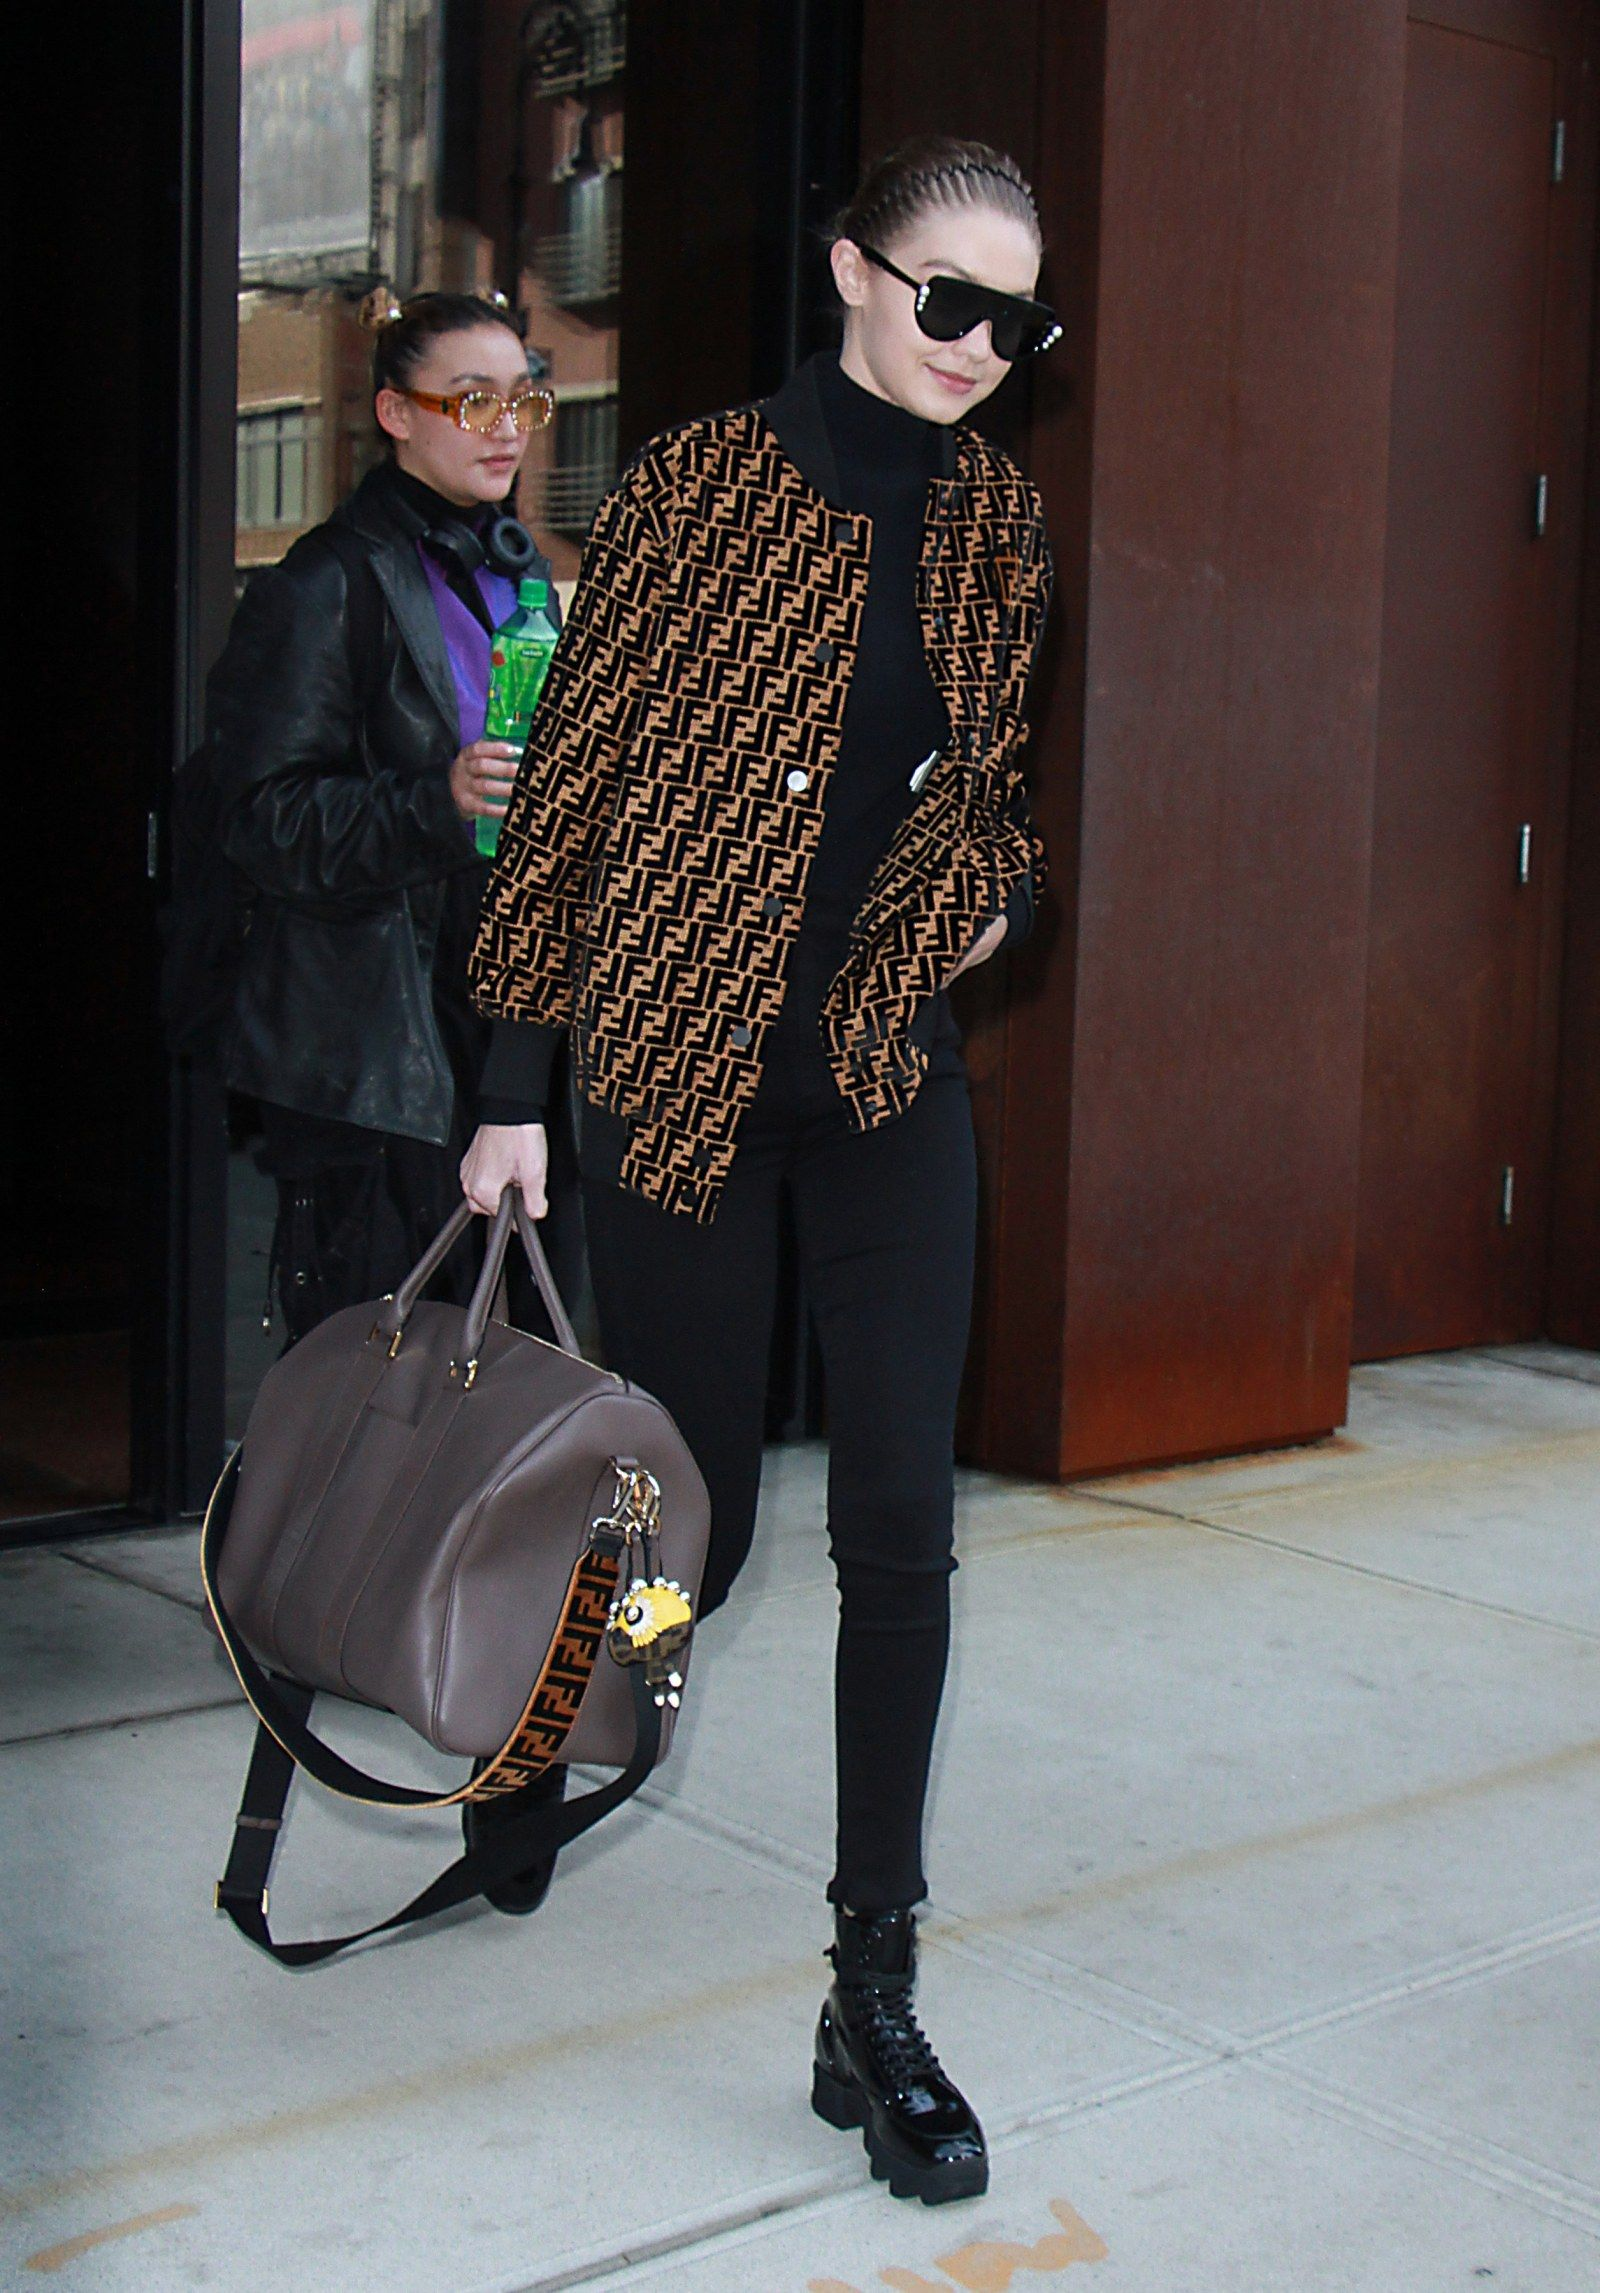 77a1ac4795c2 Vintage items that are worth the splurge! Seen here  Gigi Hadid in double F  Fendi logo jacket at the airport.